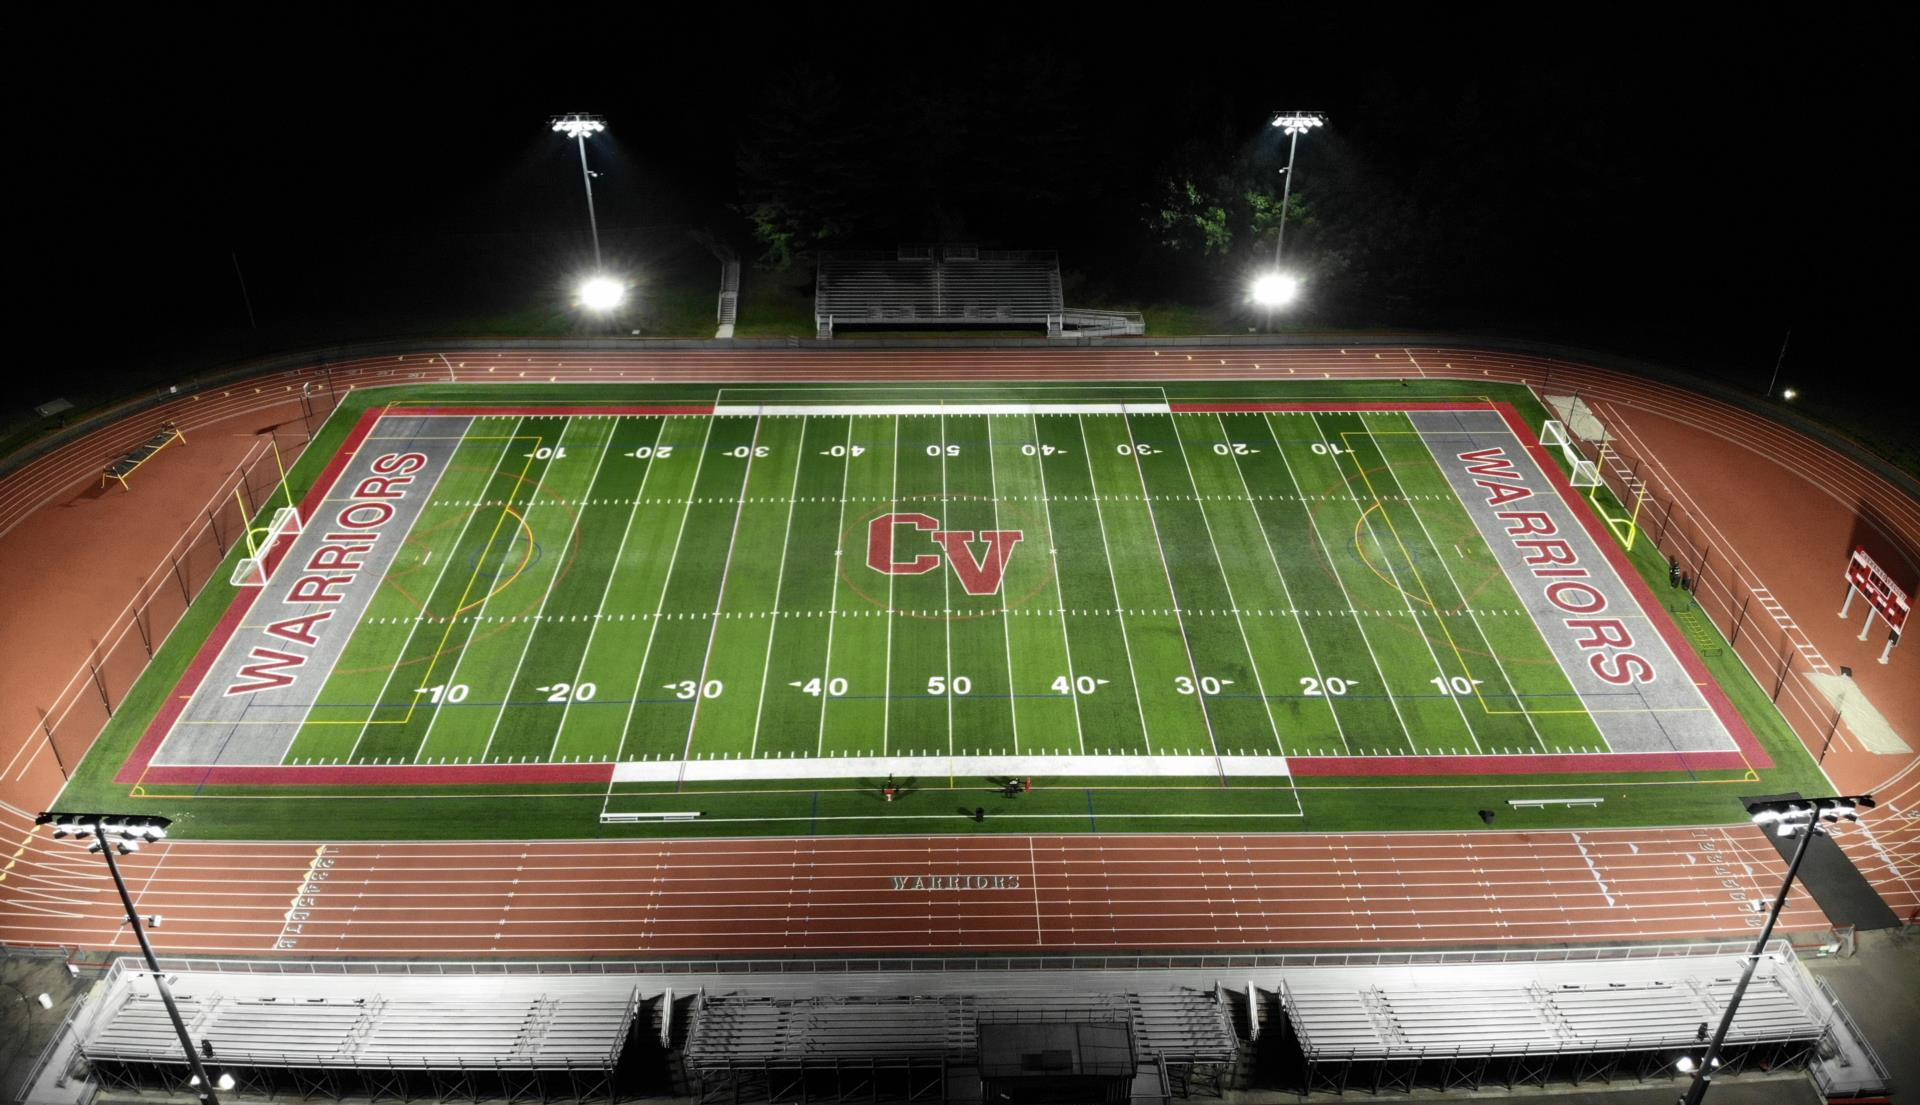 Warrior Stadium Field at night